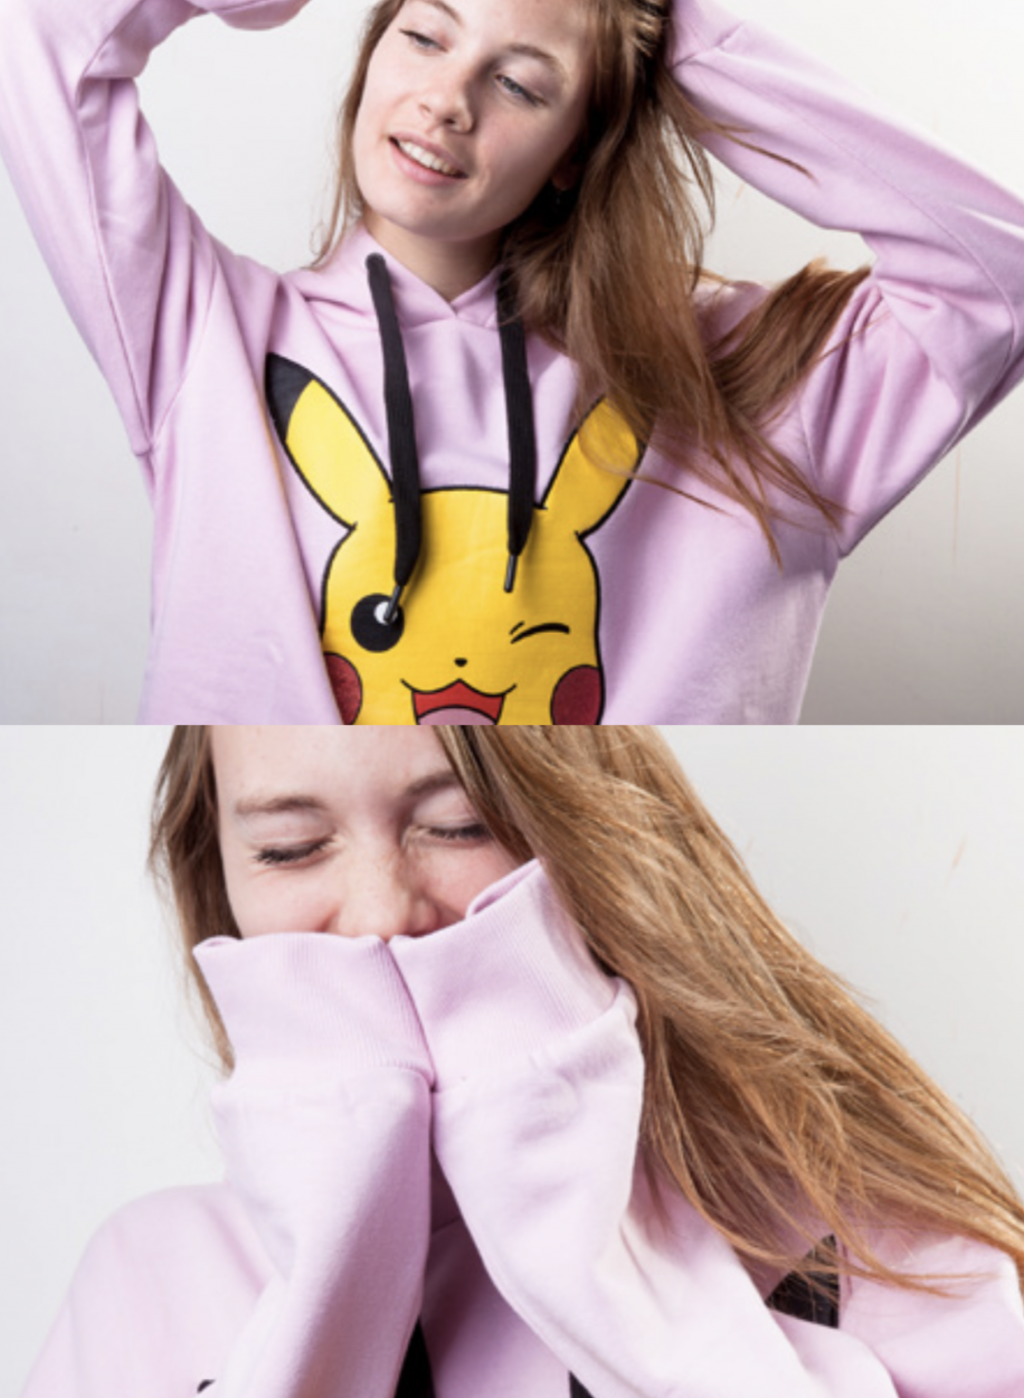 POKEMON - Women's Sweatshirt - Pikachu (L)_4